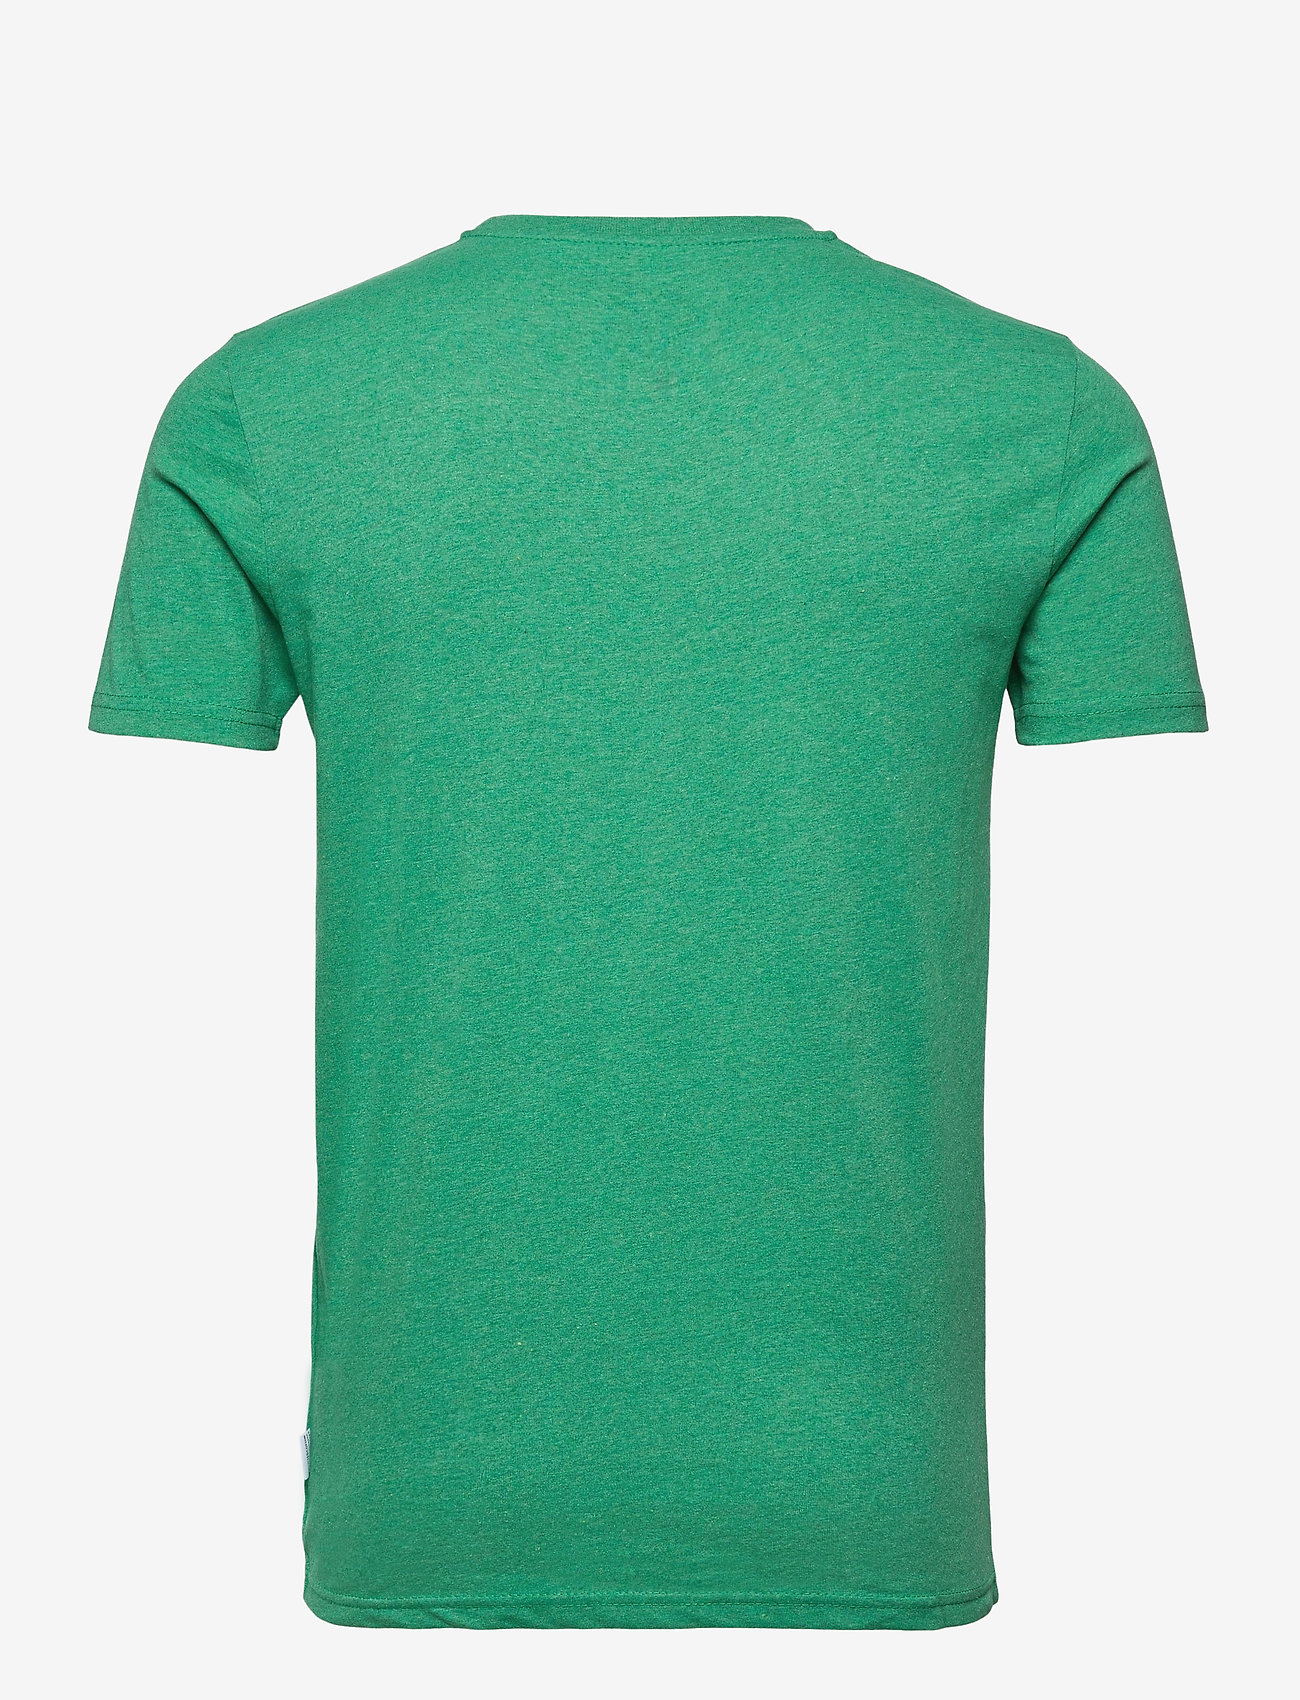 Kronstadt - Timmi Recycled cotton t-shirt - basic t-shirts - lime - 1